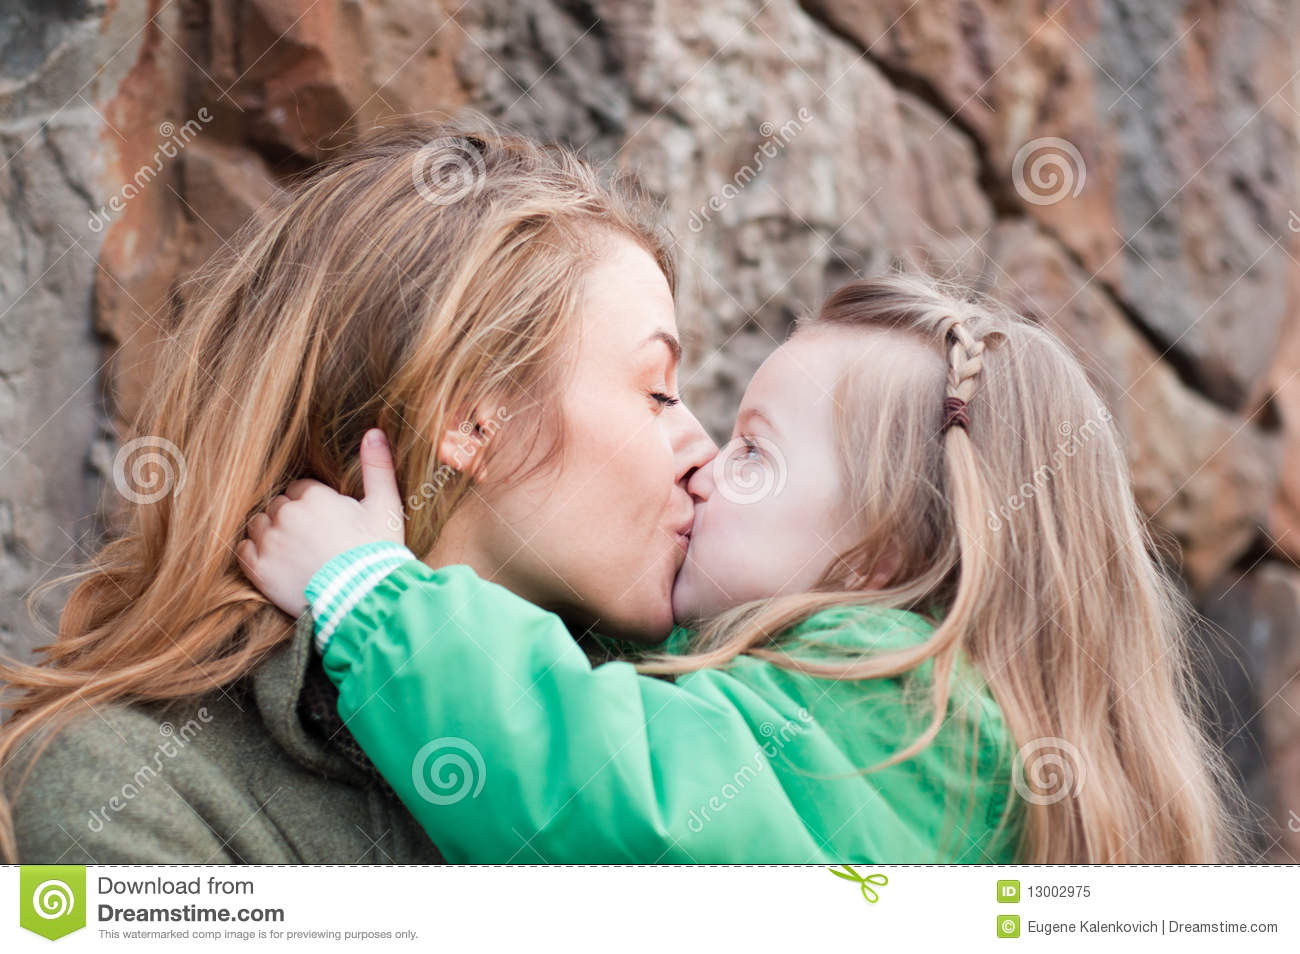 Mom and daughter kissing